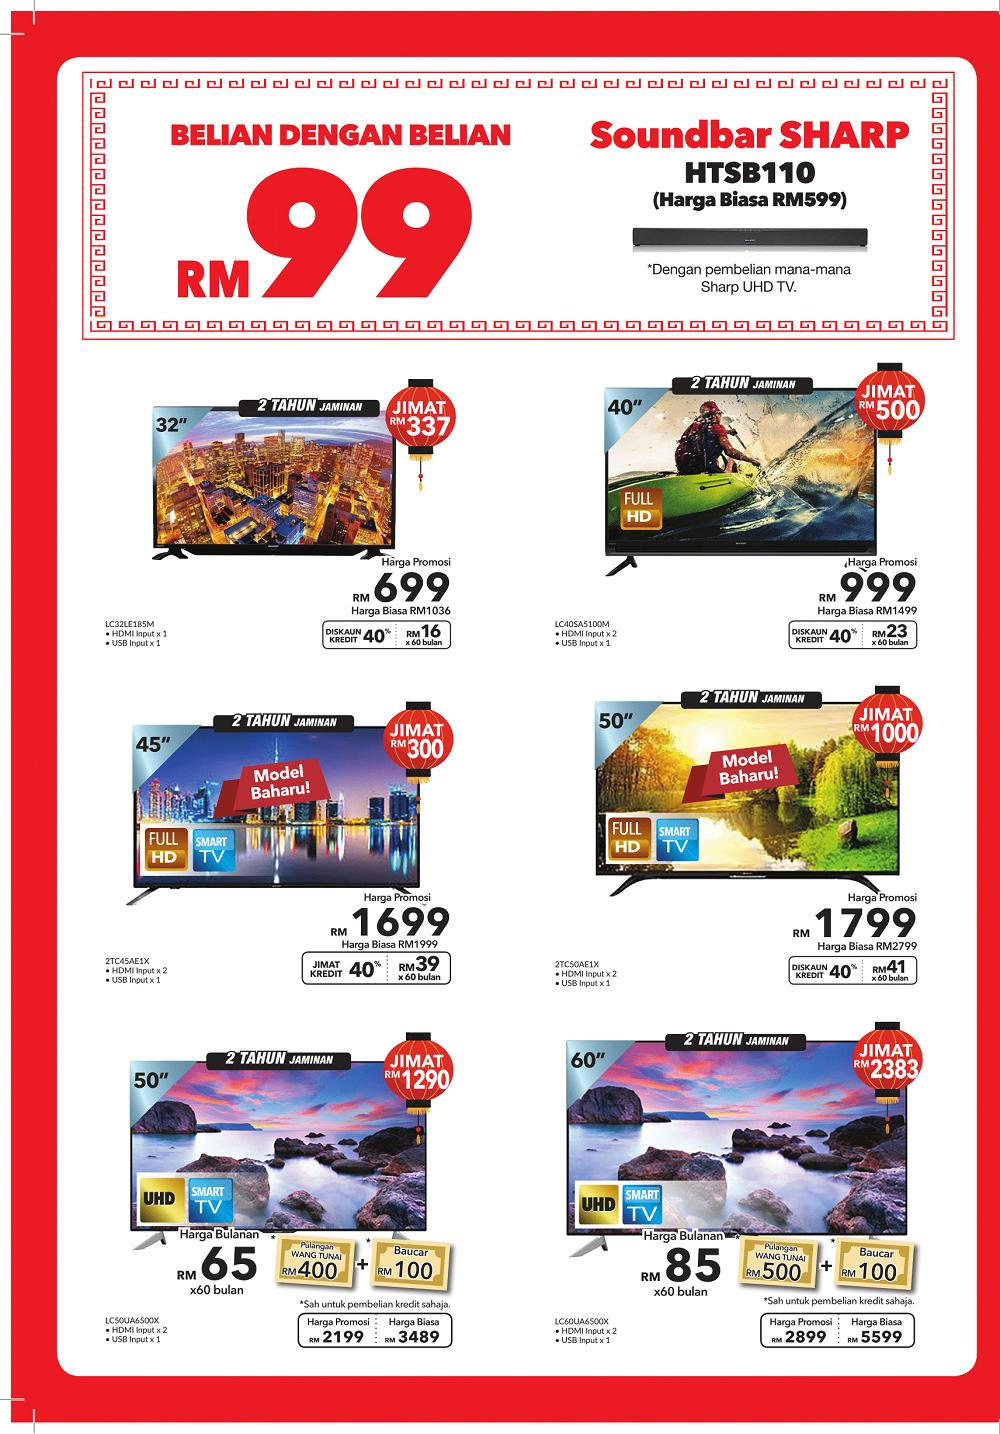 COURTS Sharp Promotion Catalogue at East Malaysia (10 January 2019.